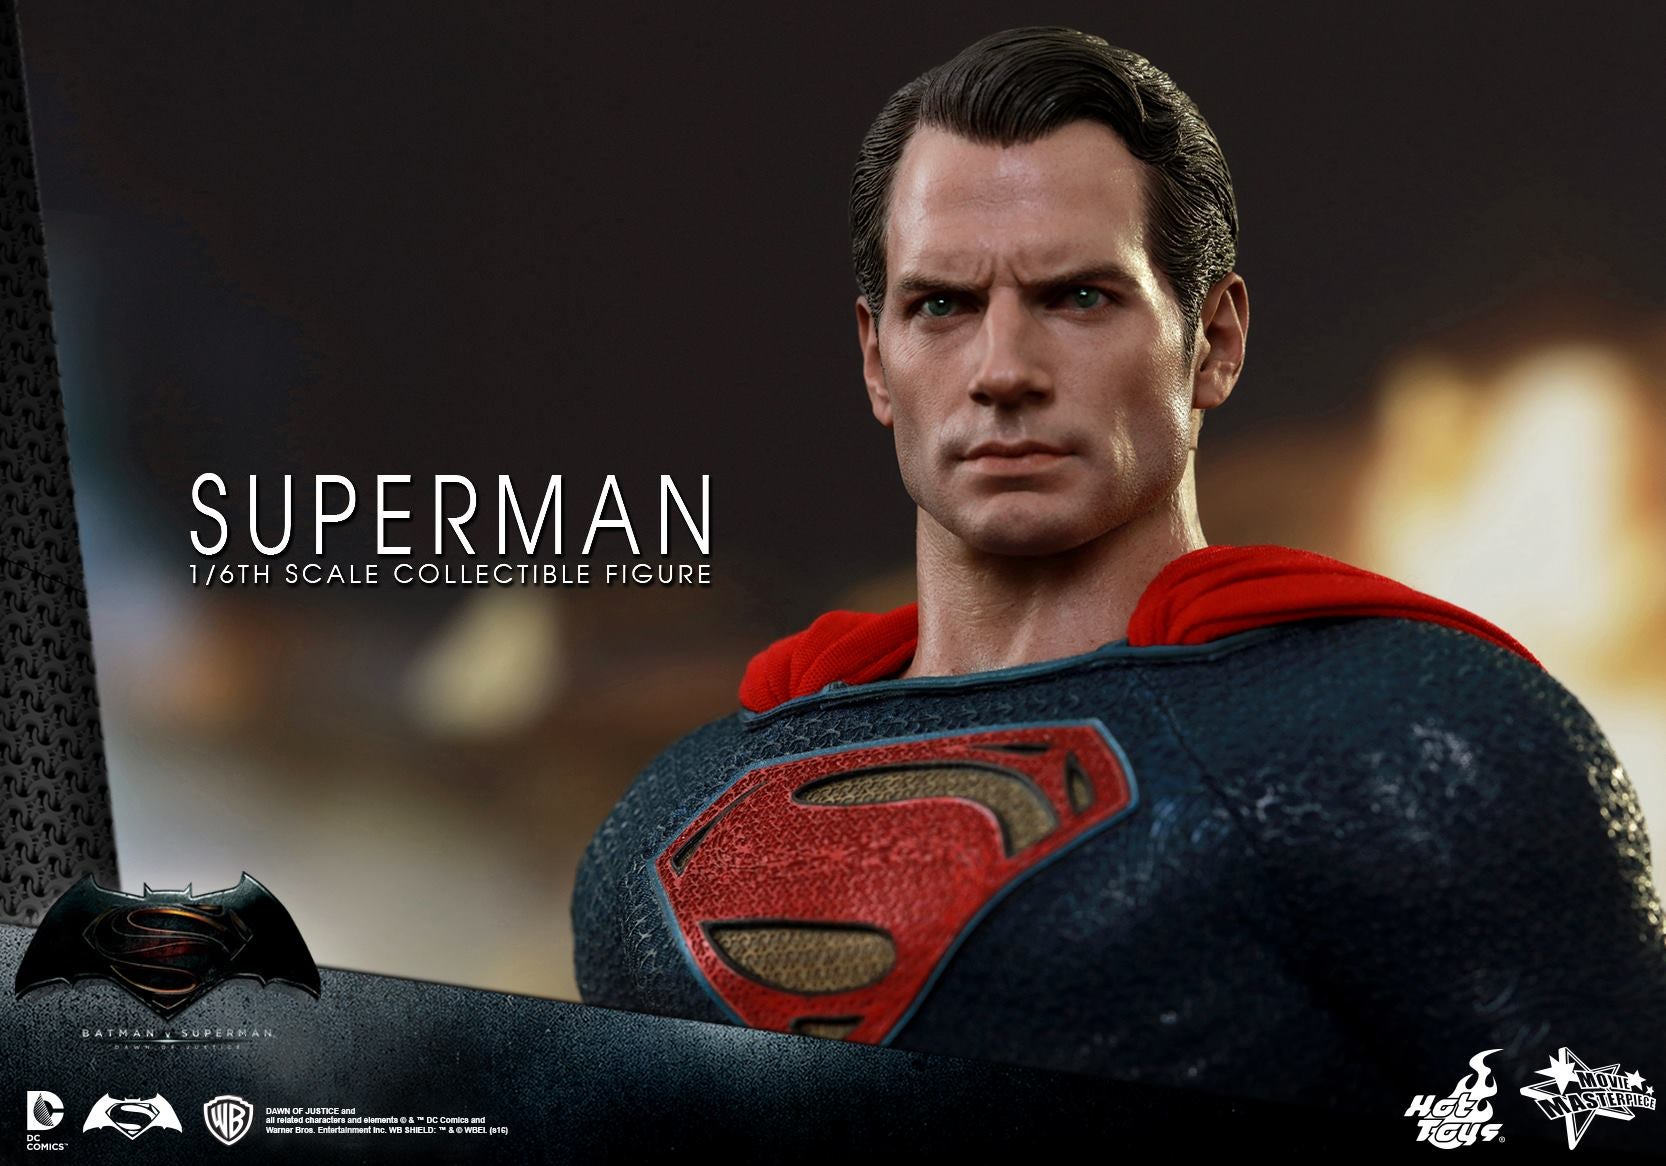 [Action Figures] Todo sobre Action Figures, Hot Toys, Sideshows - Página 6 Bvs-hot-toys-superman-4-162889